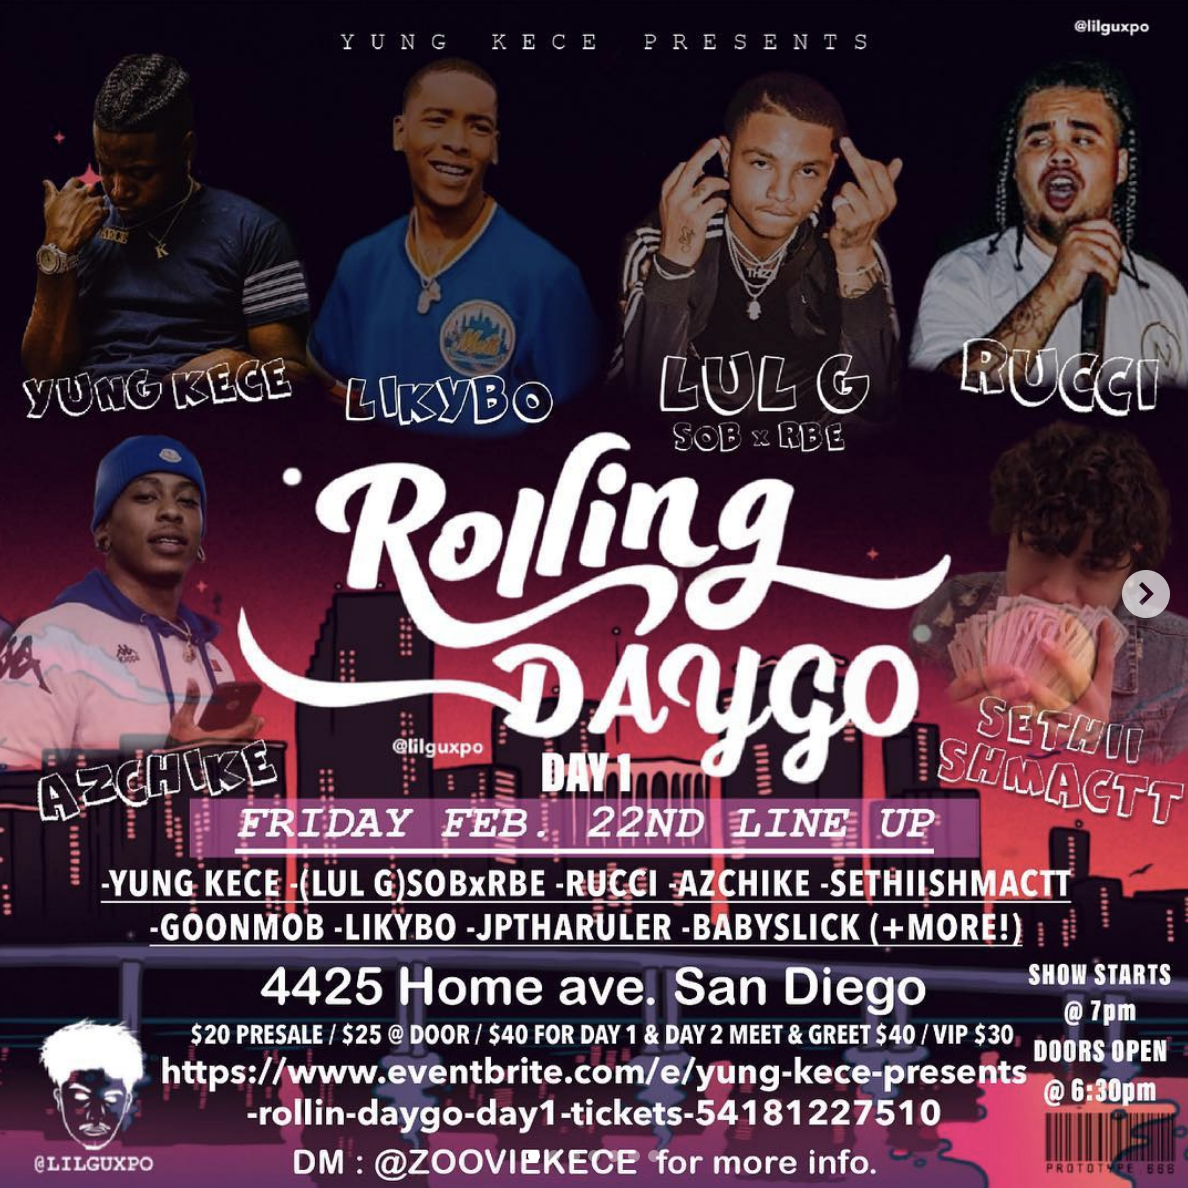 Rolling Daygo Day 1